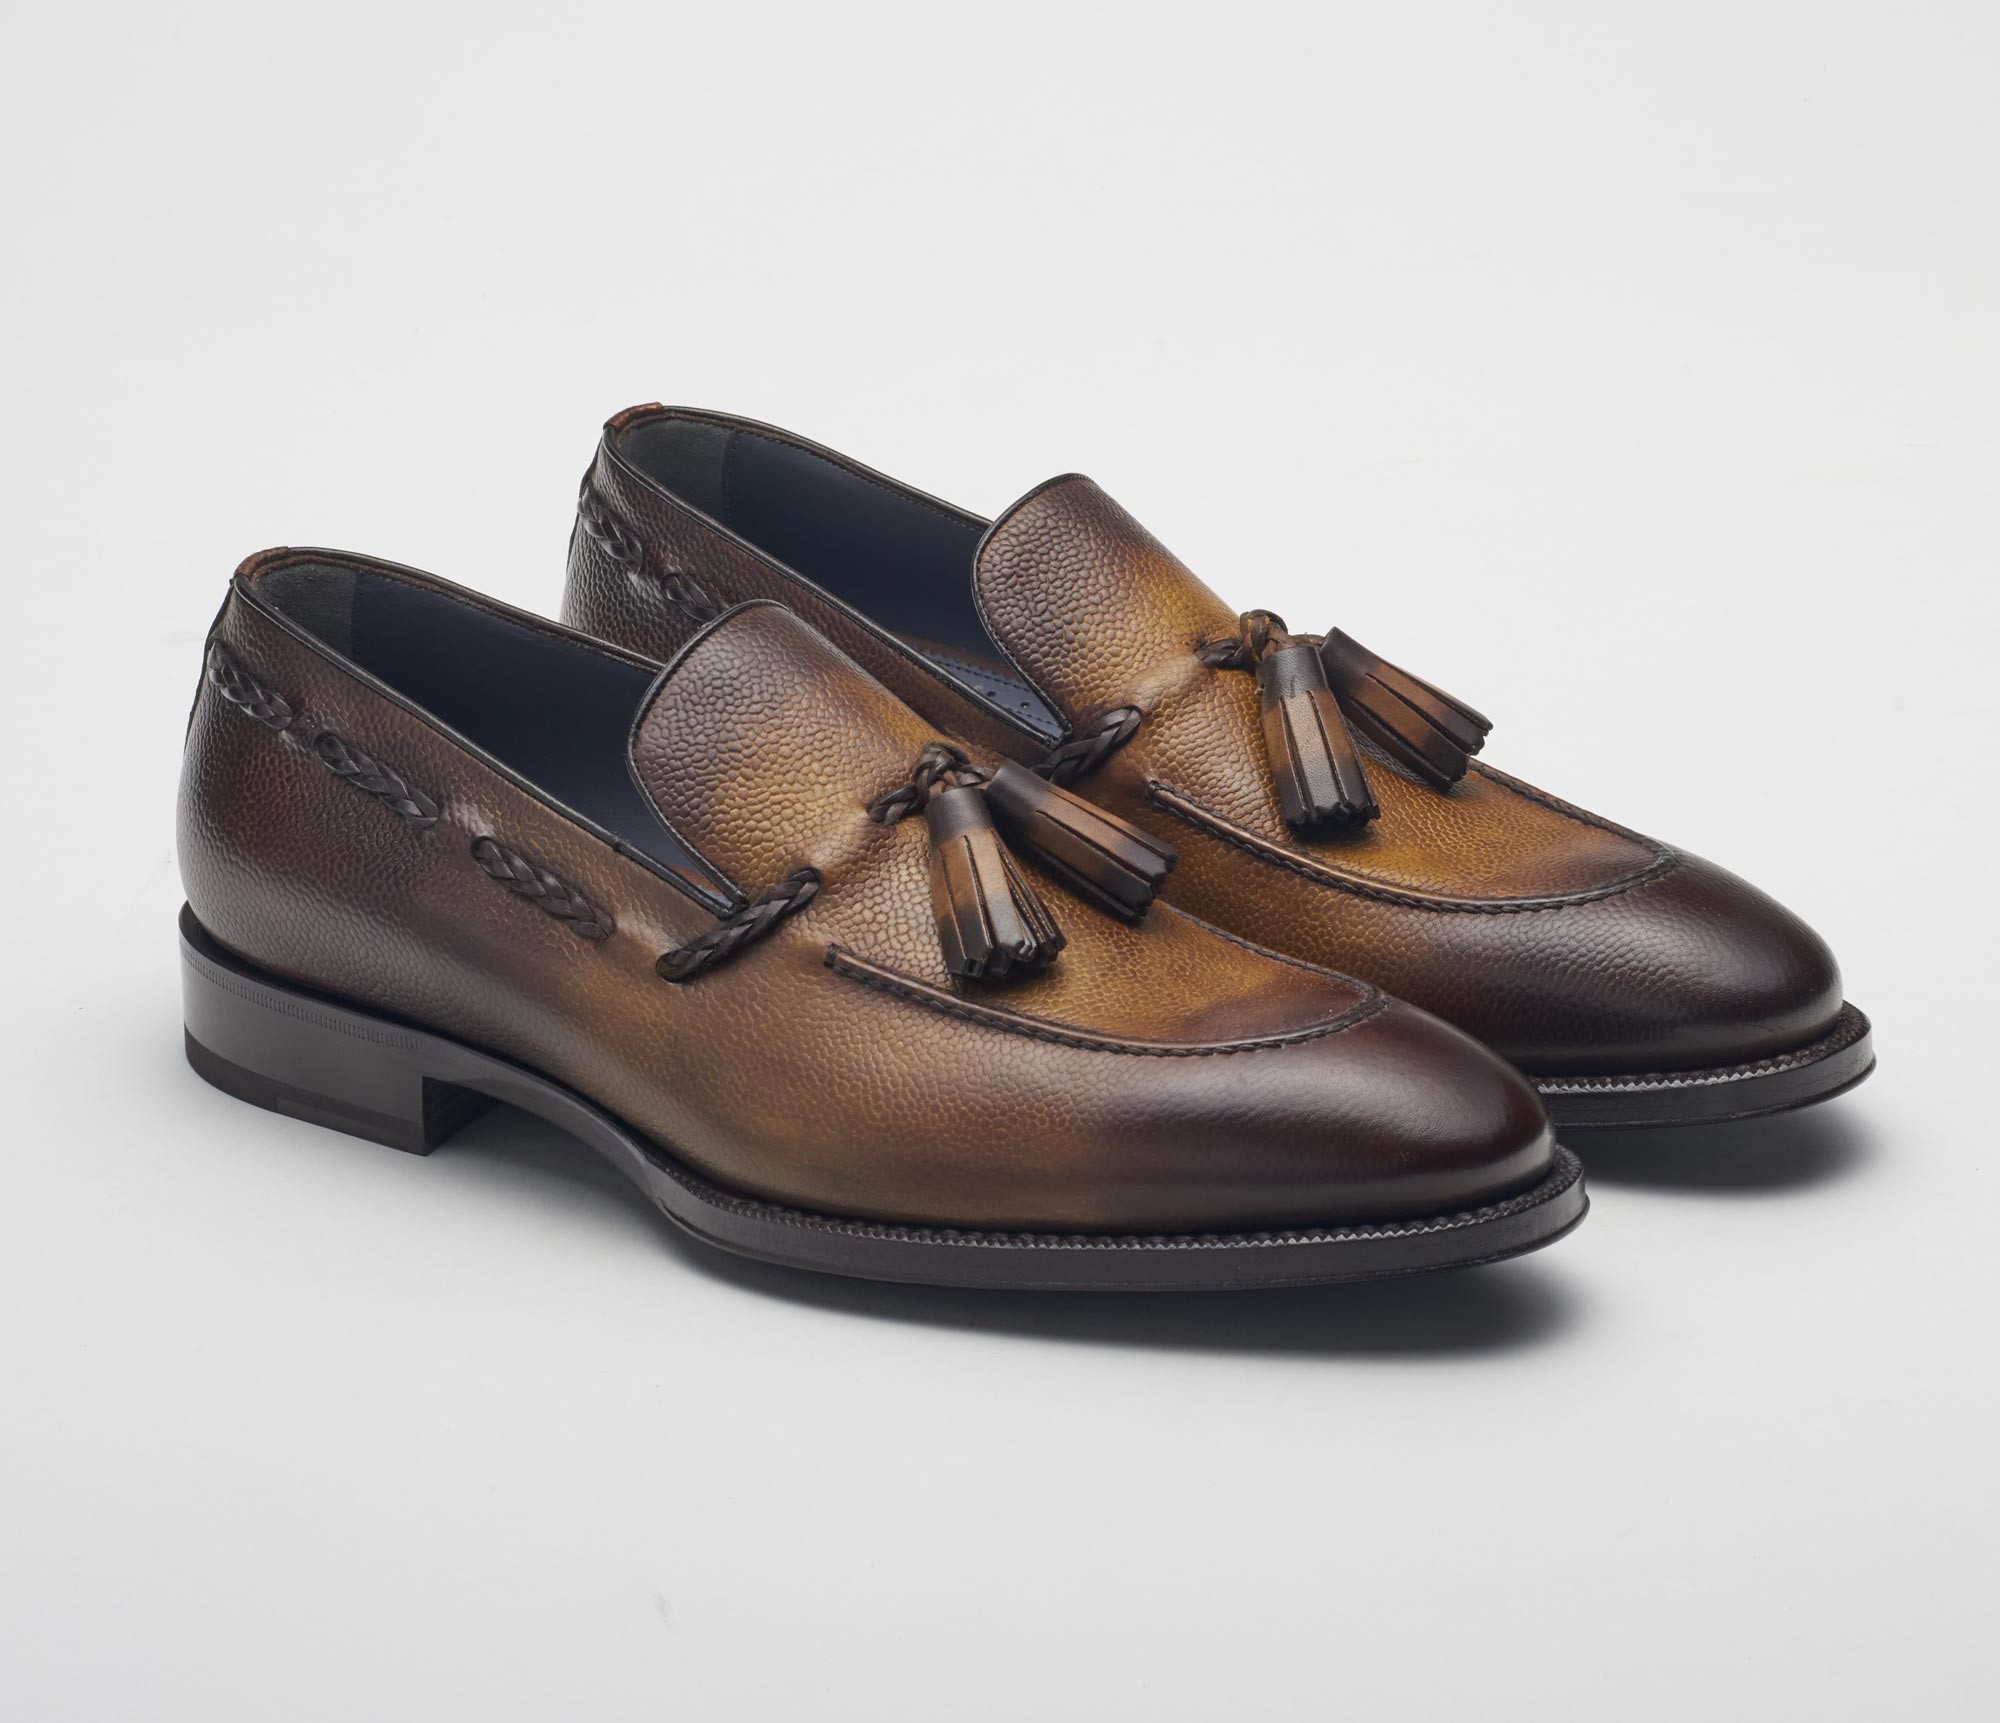 Varese Tassel Loafer in Ciccolato